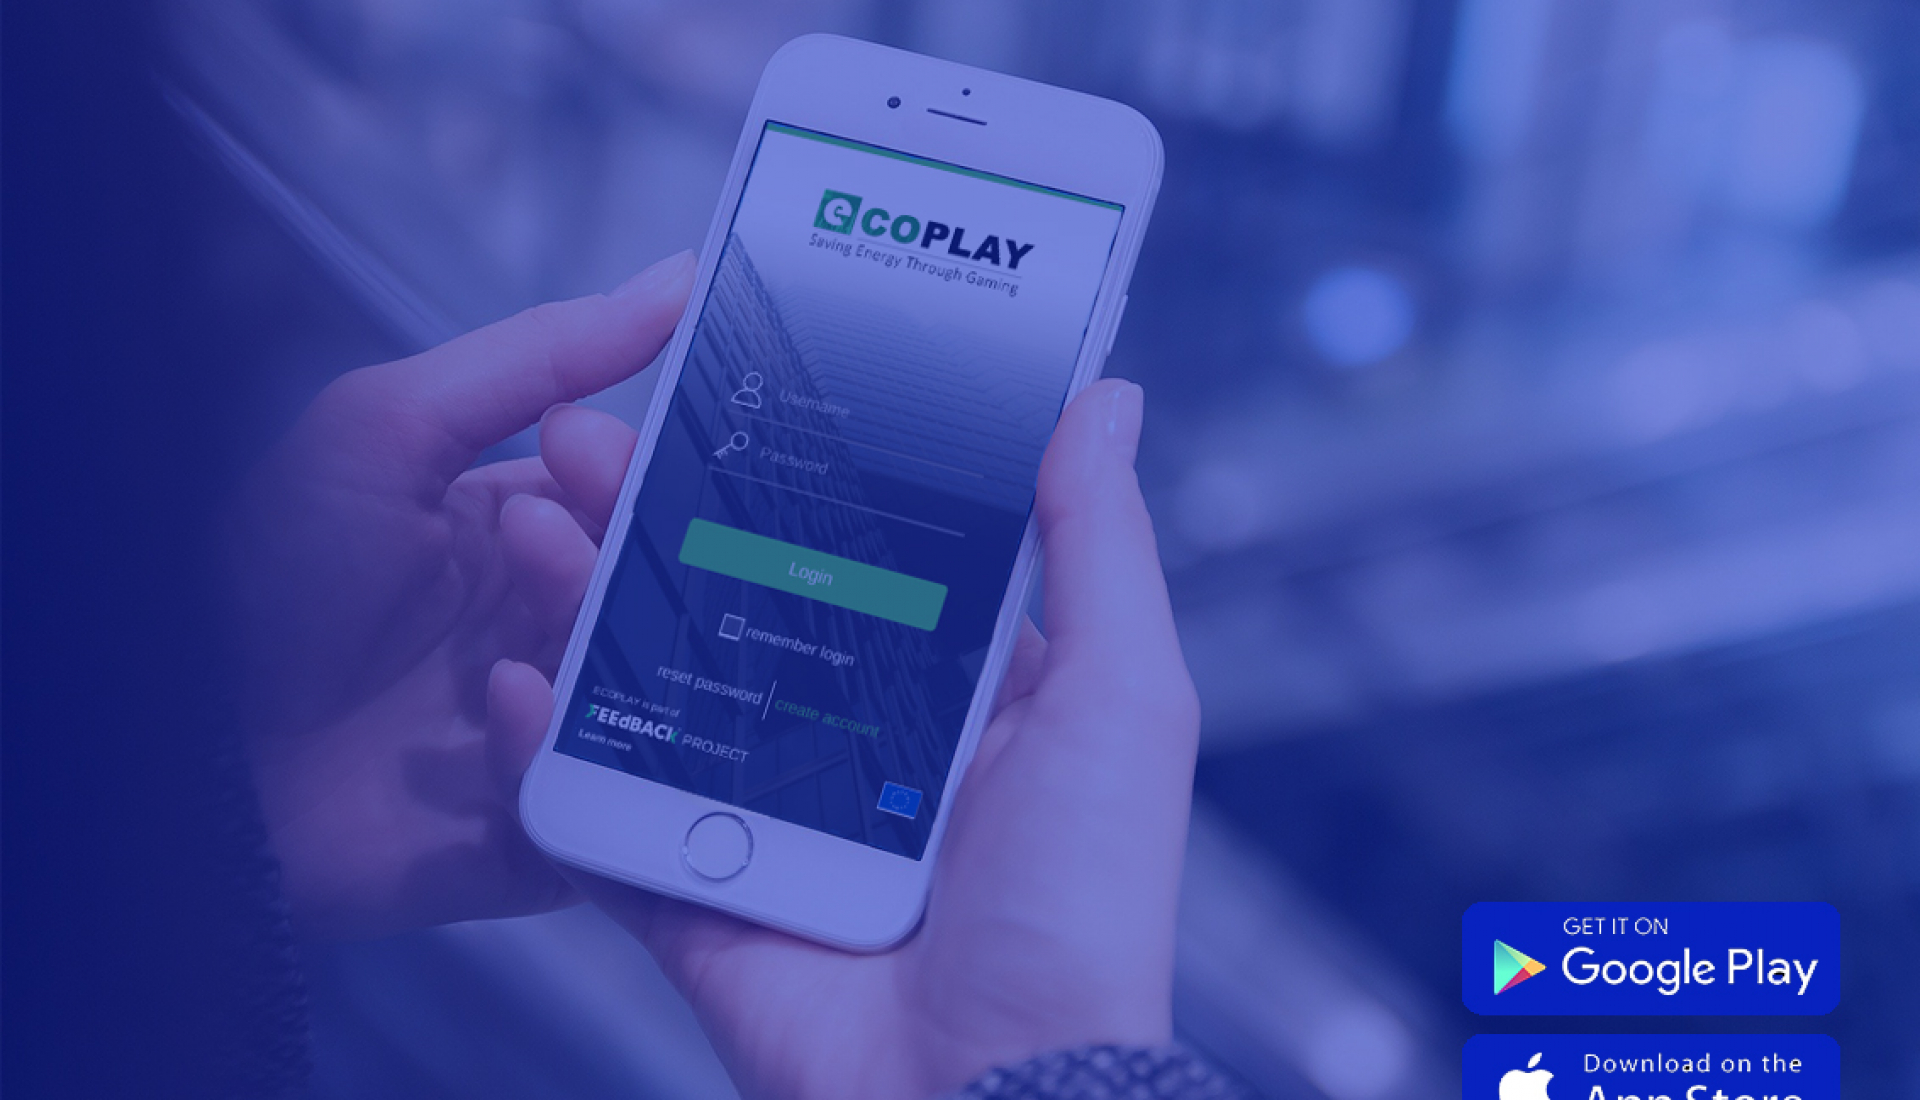 ecoplay:-the-mobile-application-that-helps-you-save-energy